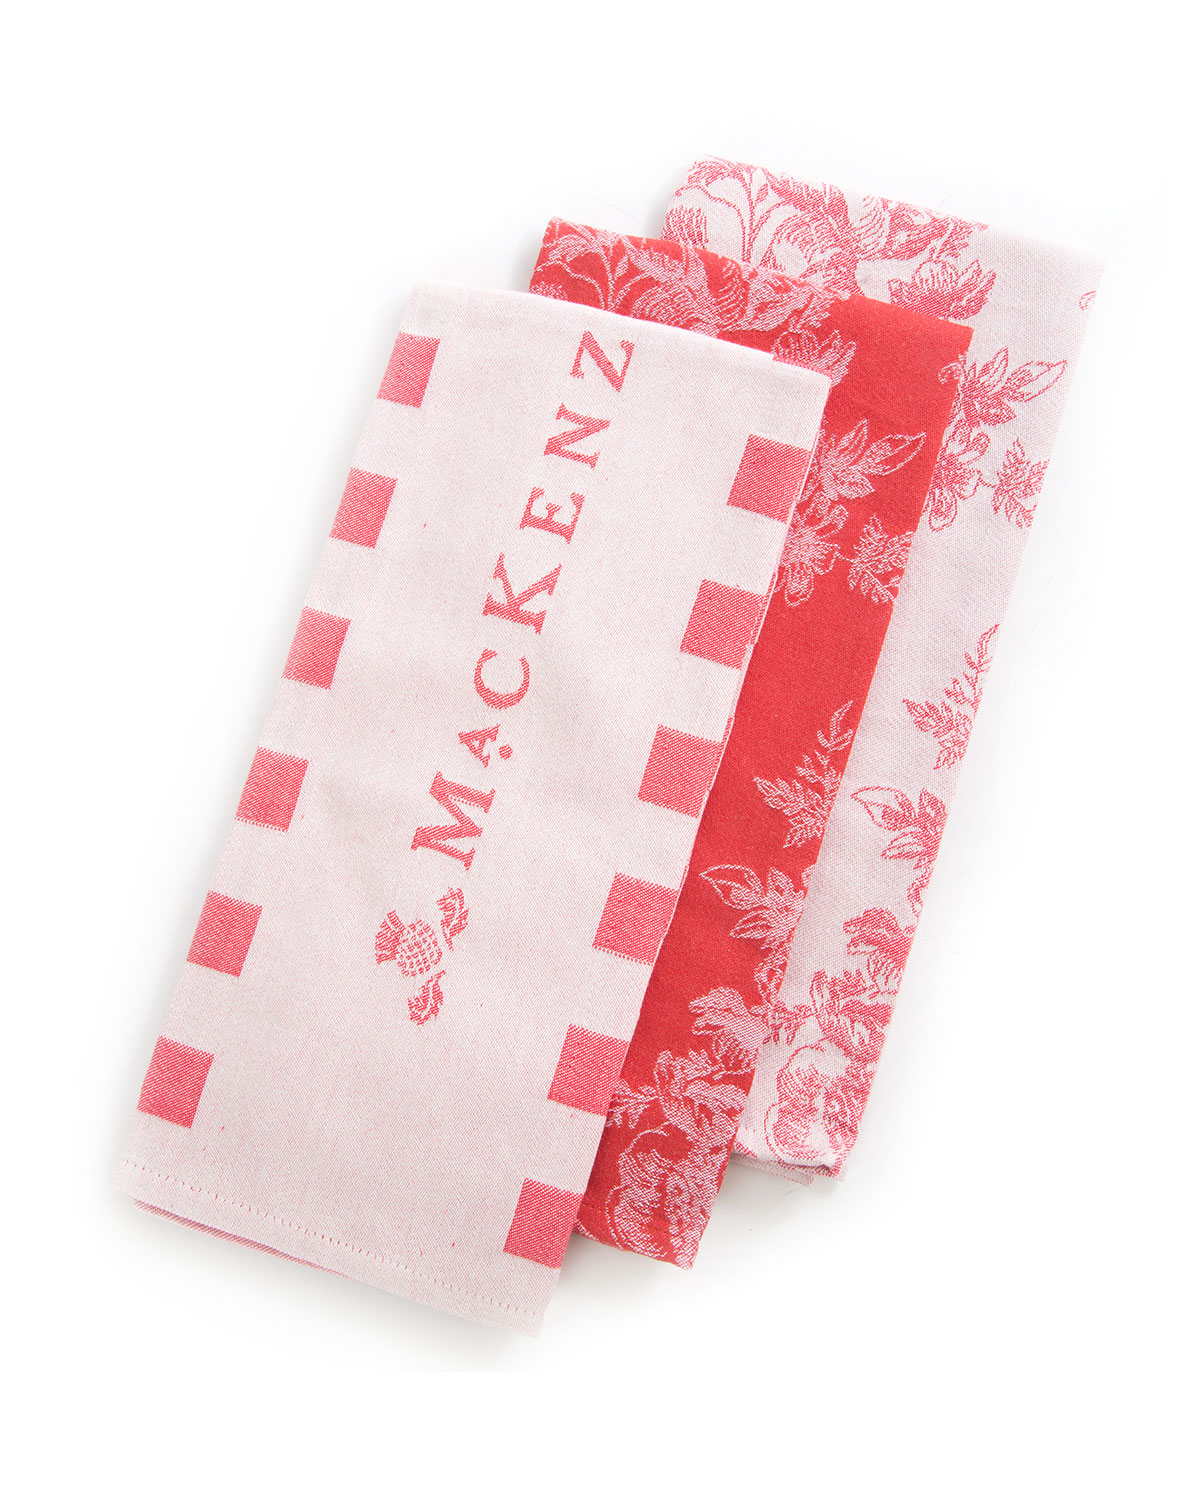 Wild Rose Dish Towels, Set of 3